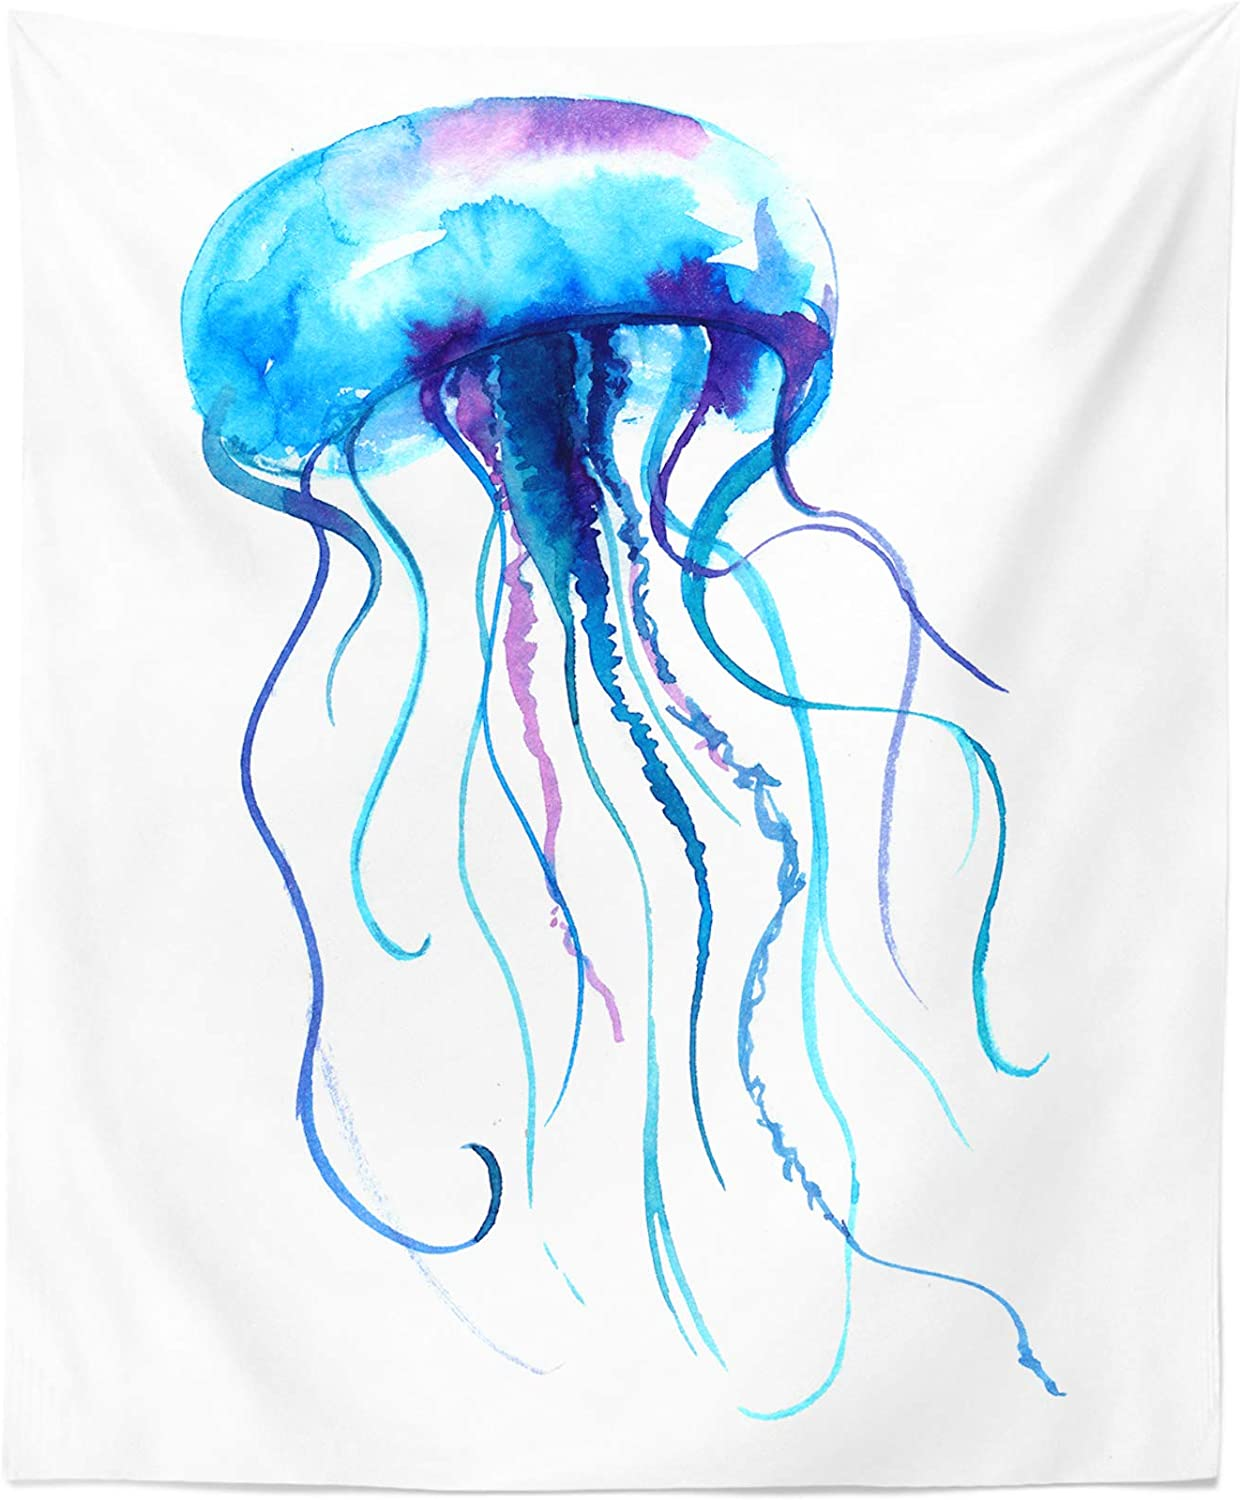 Jellyfish Watercolor Tapestry San Jose New popularity Mall - Jelly Wall Hanging Décor Ar Fish